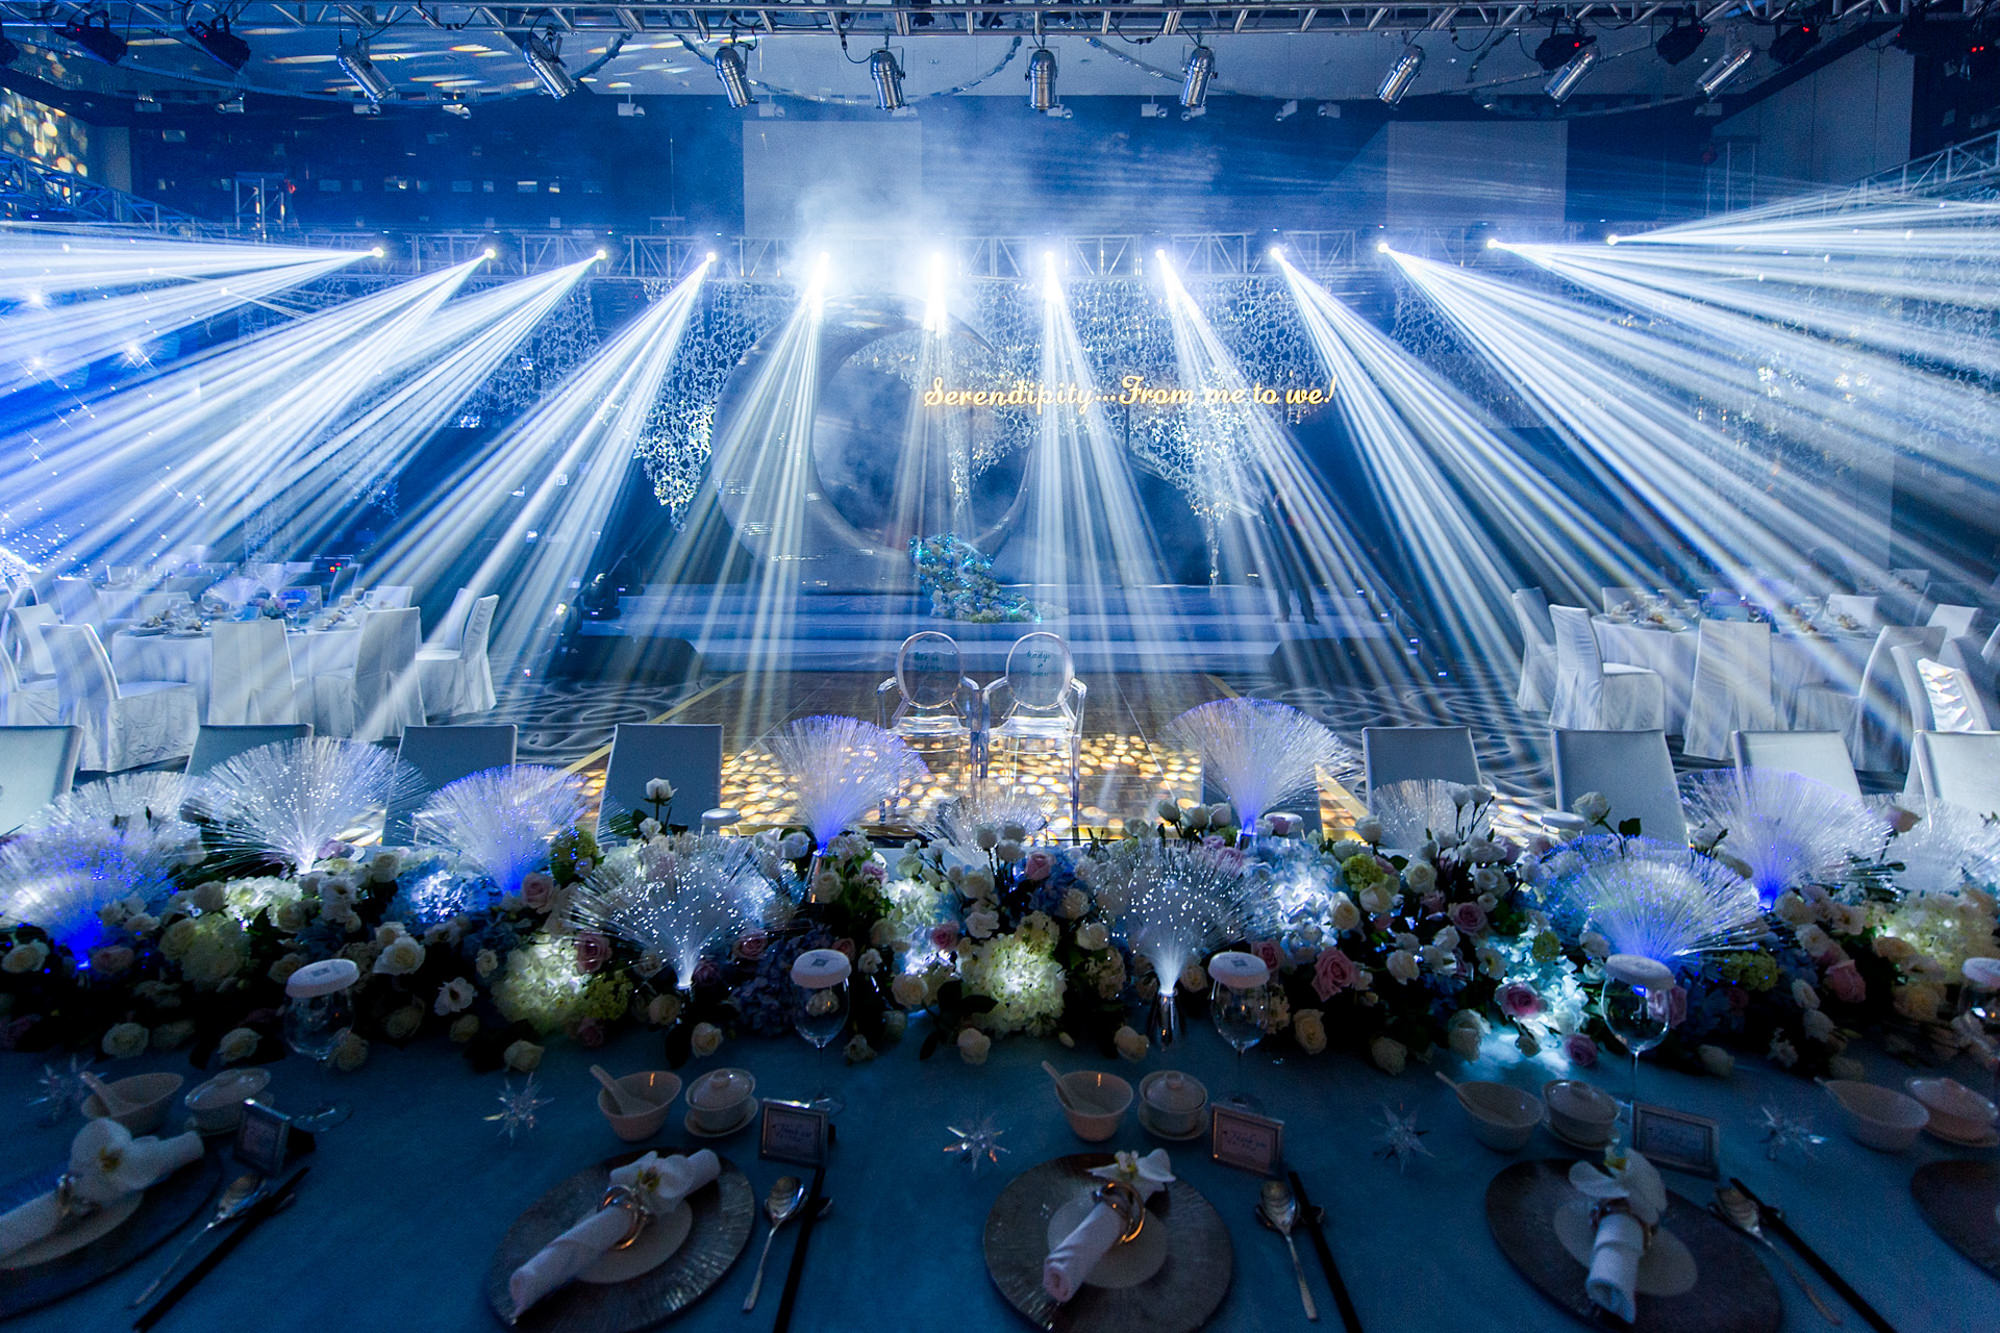 Reception decor elaborately lit with blue spotlights - Studio Impressions Photography